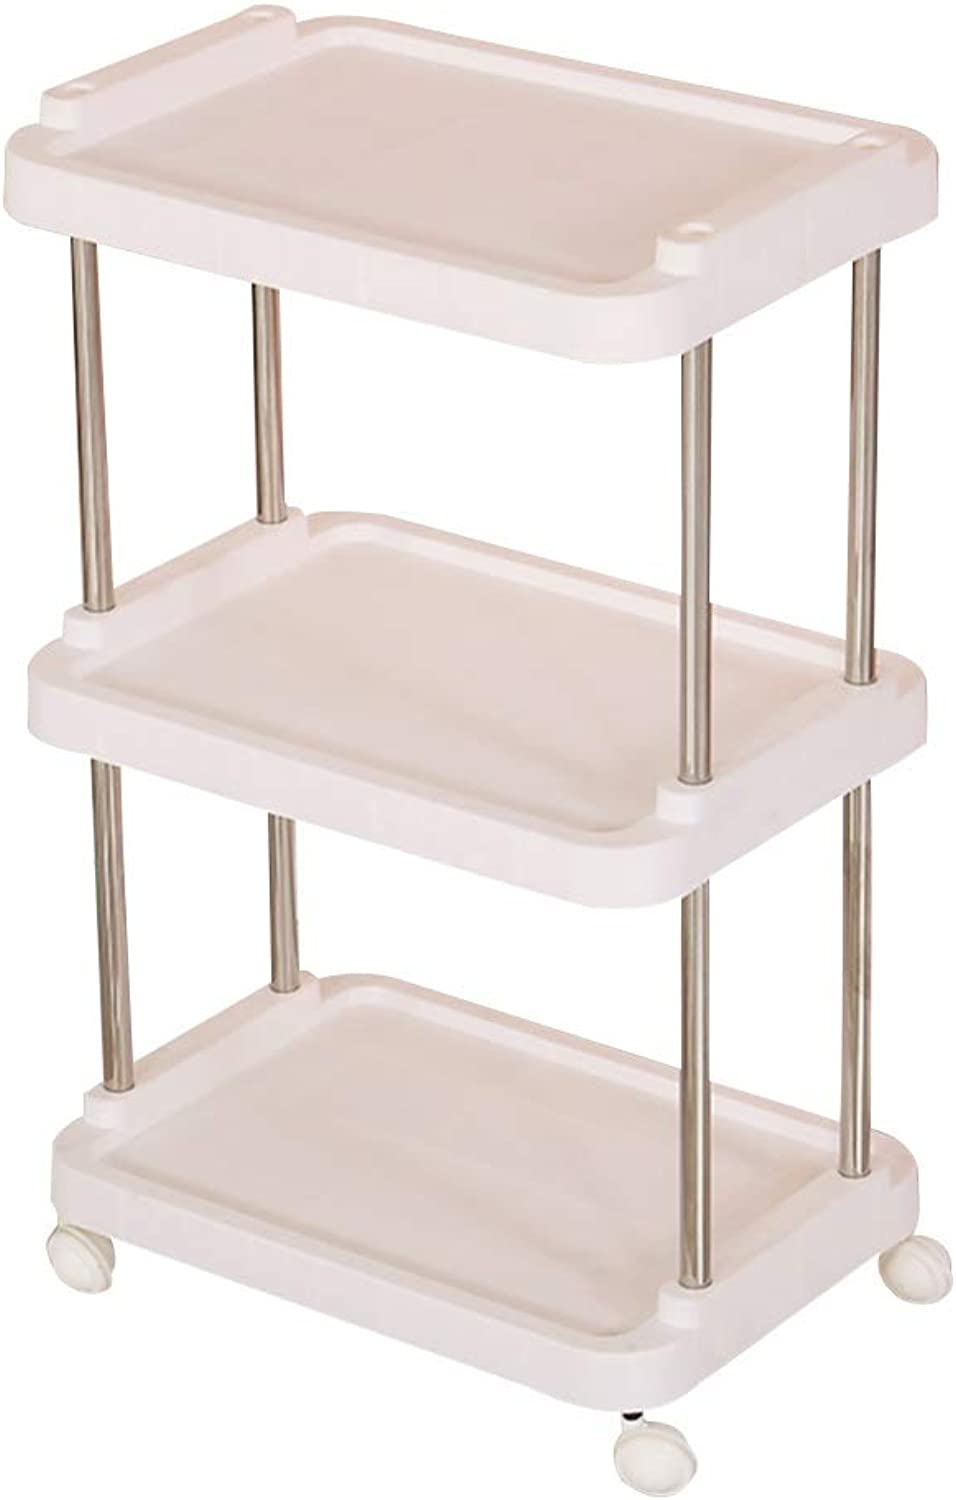 Serving Trolley Cart Beauty Salon ABS Plastic Stainless Steel Pipe Silent Wheel 3 Tier Easy to Install Easy to Clean, Load 30 Kg, 3 colors (color   White)